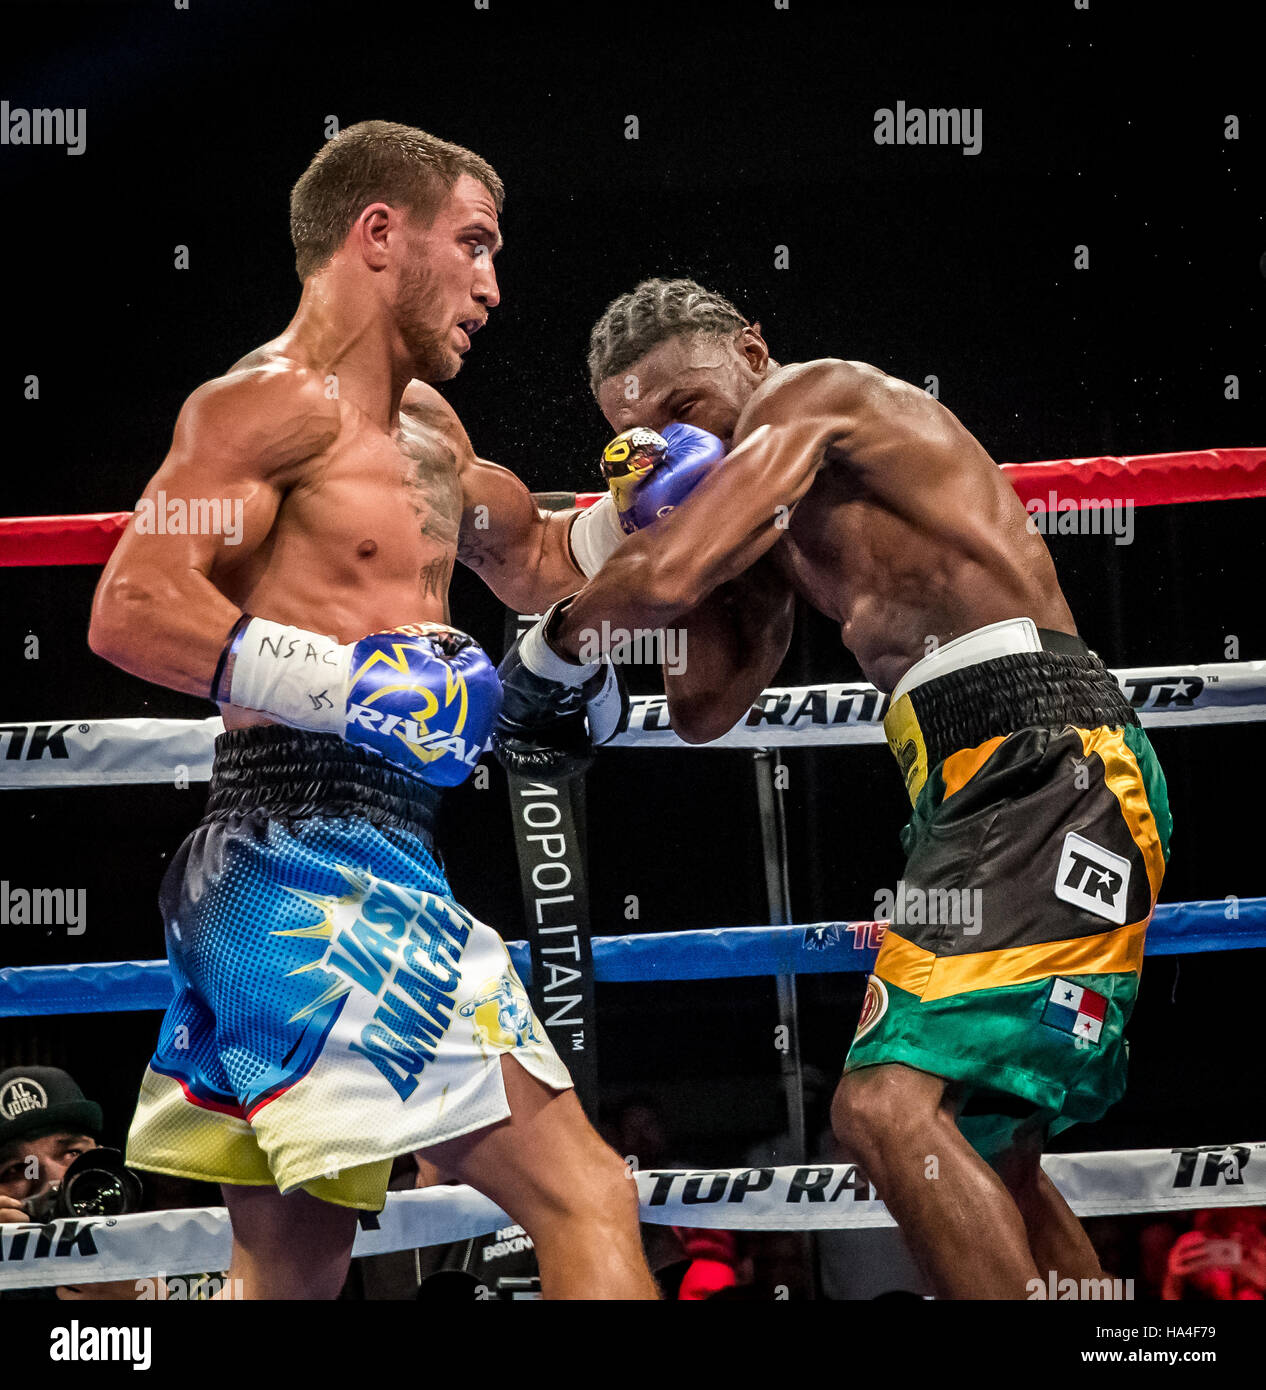 Las Vegas, NV, USA. 26th Nov, 2016. ***HOUSE COVERAGE*** LOMACHENKO vs WALTERS at The Chelsea at The Cosmopolitan Stock Photo